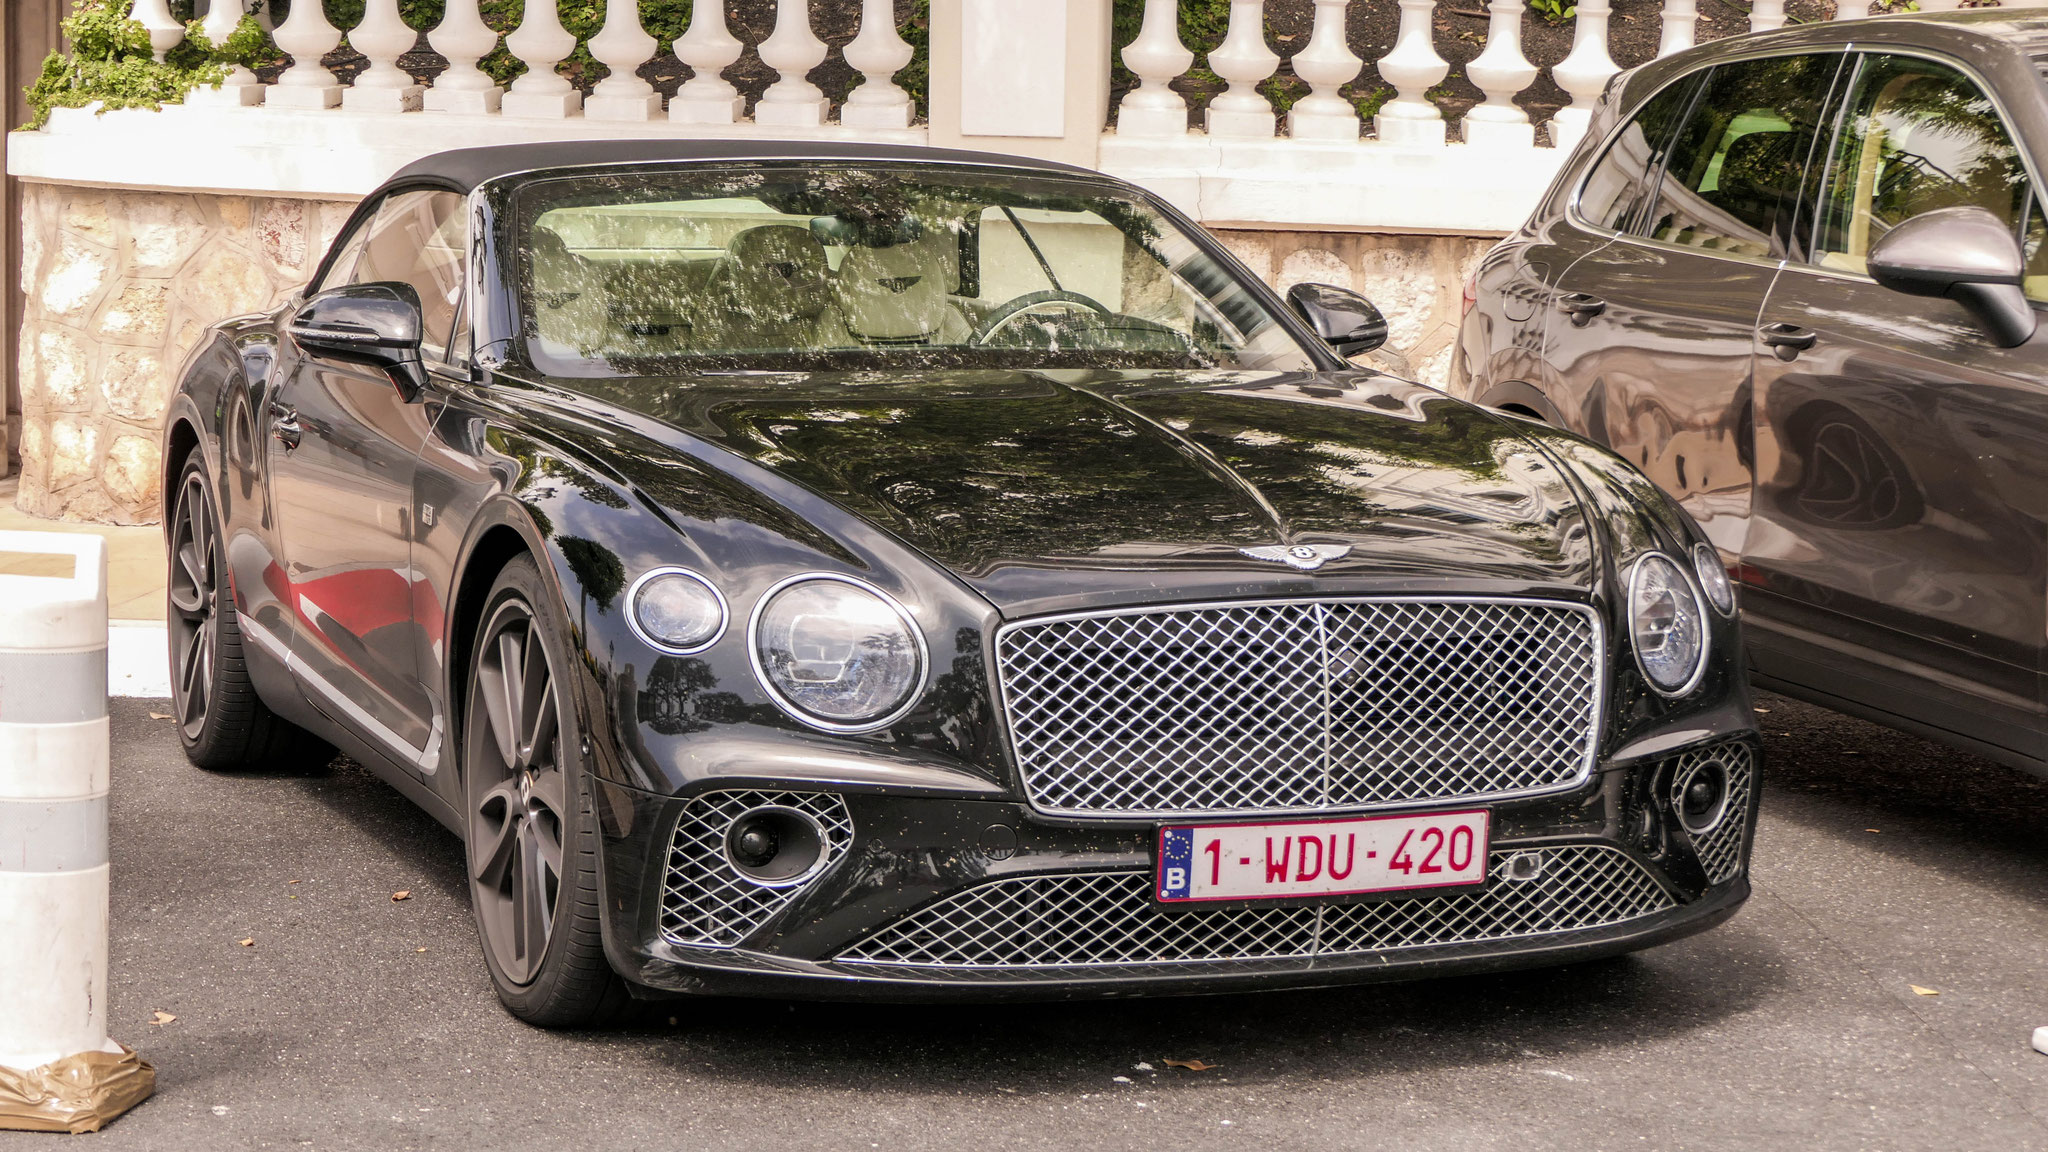 Bentley Continental GTC - 1-WDU-420 (CEL)